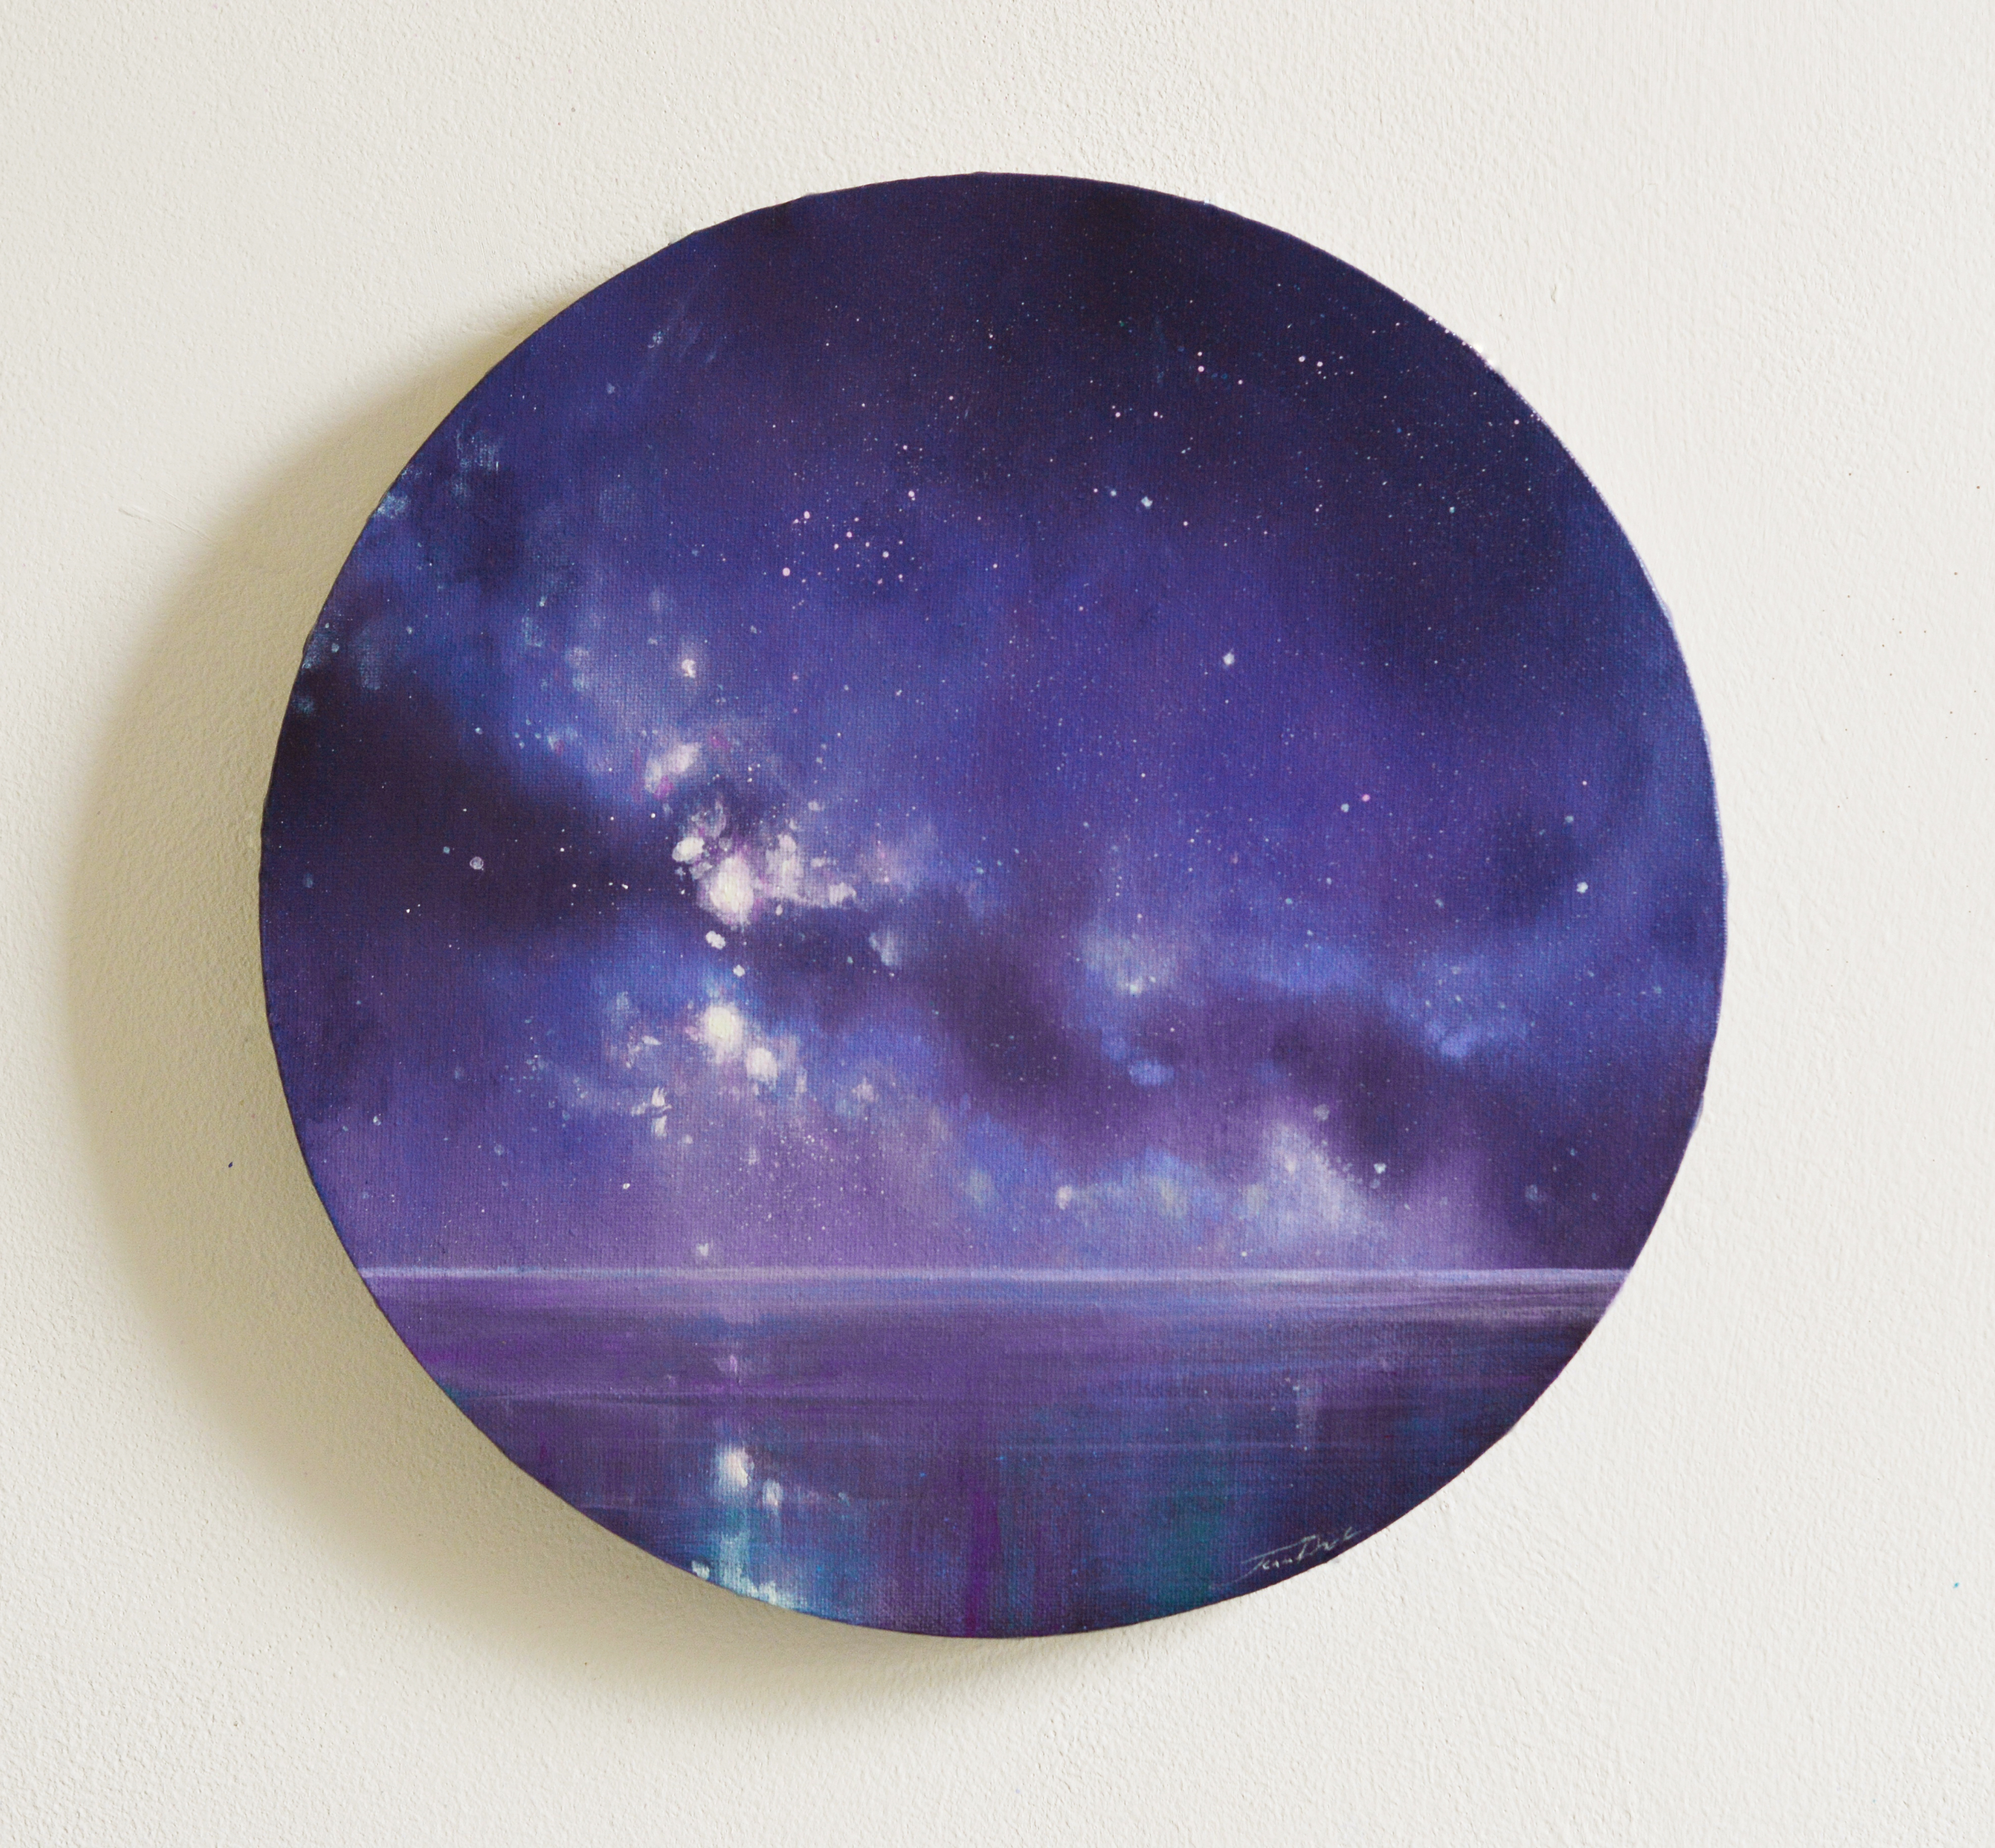 Painting The Magic Of Space Is My Passion, So Here's My Latest Endless Skies Collection..